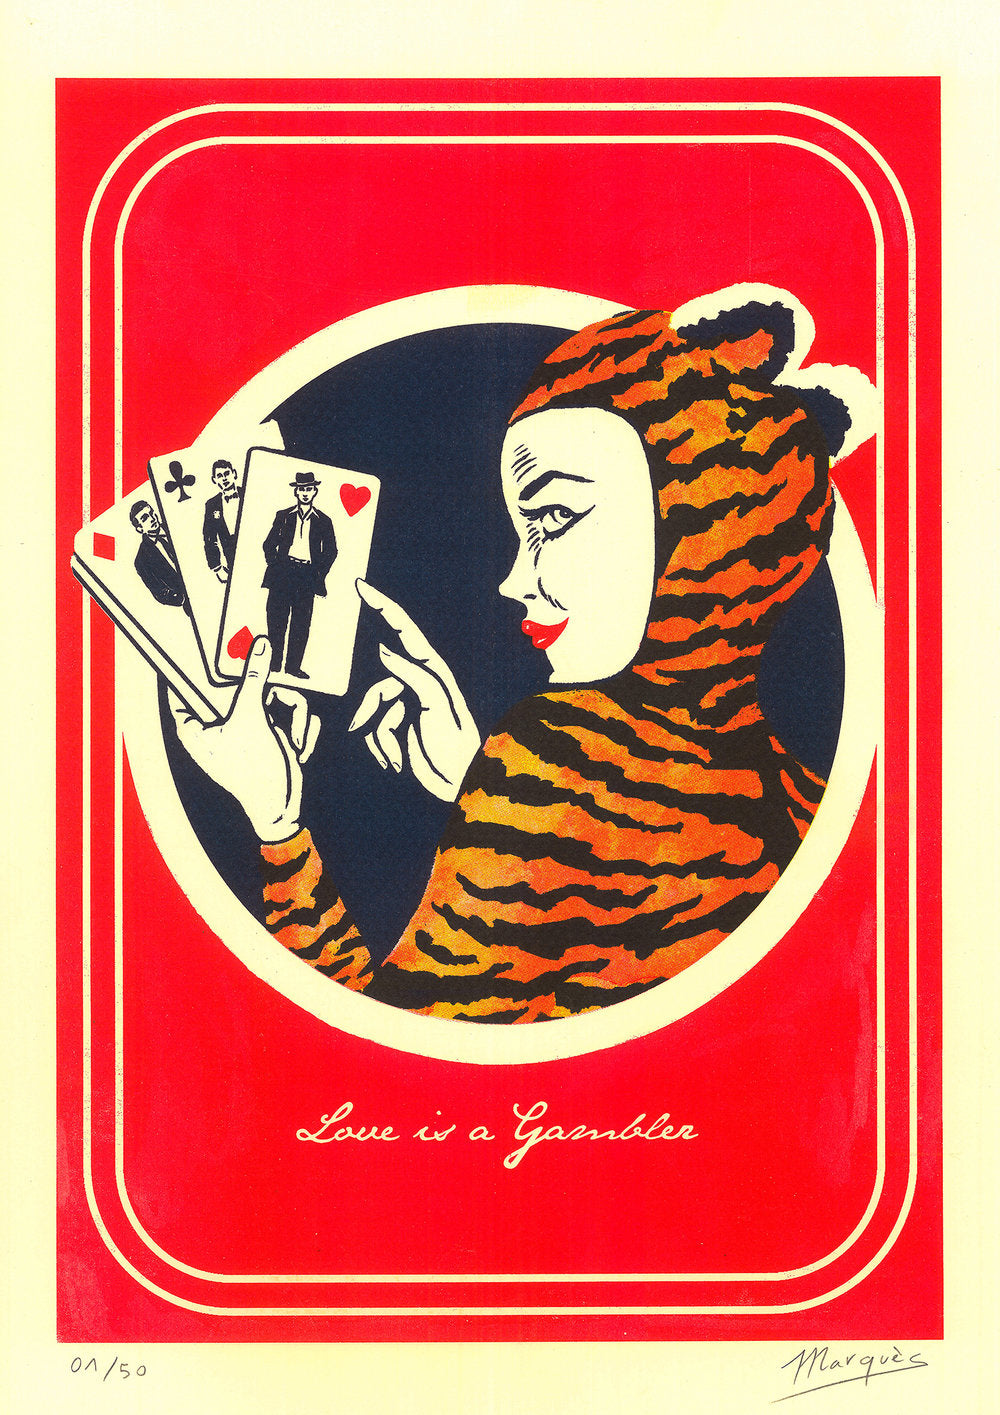 LOVE IS A GAMBLER